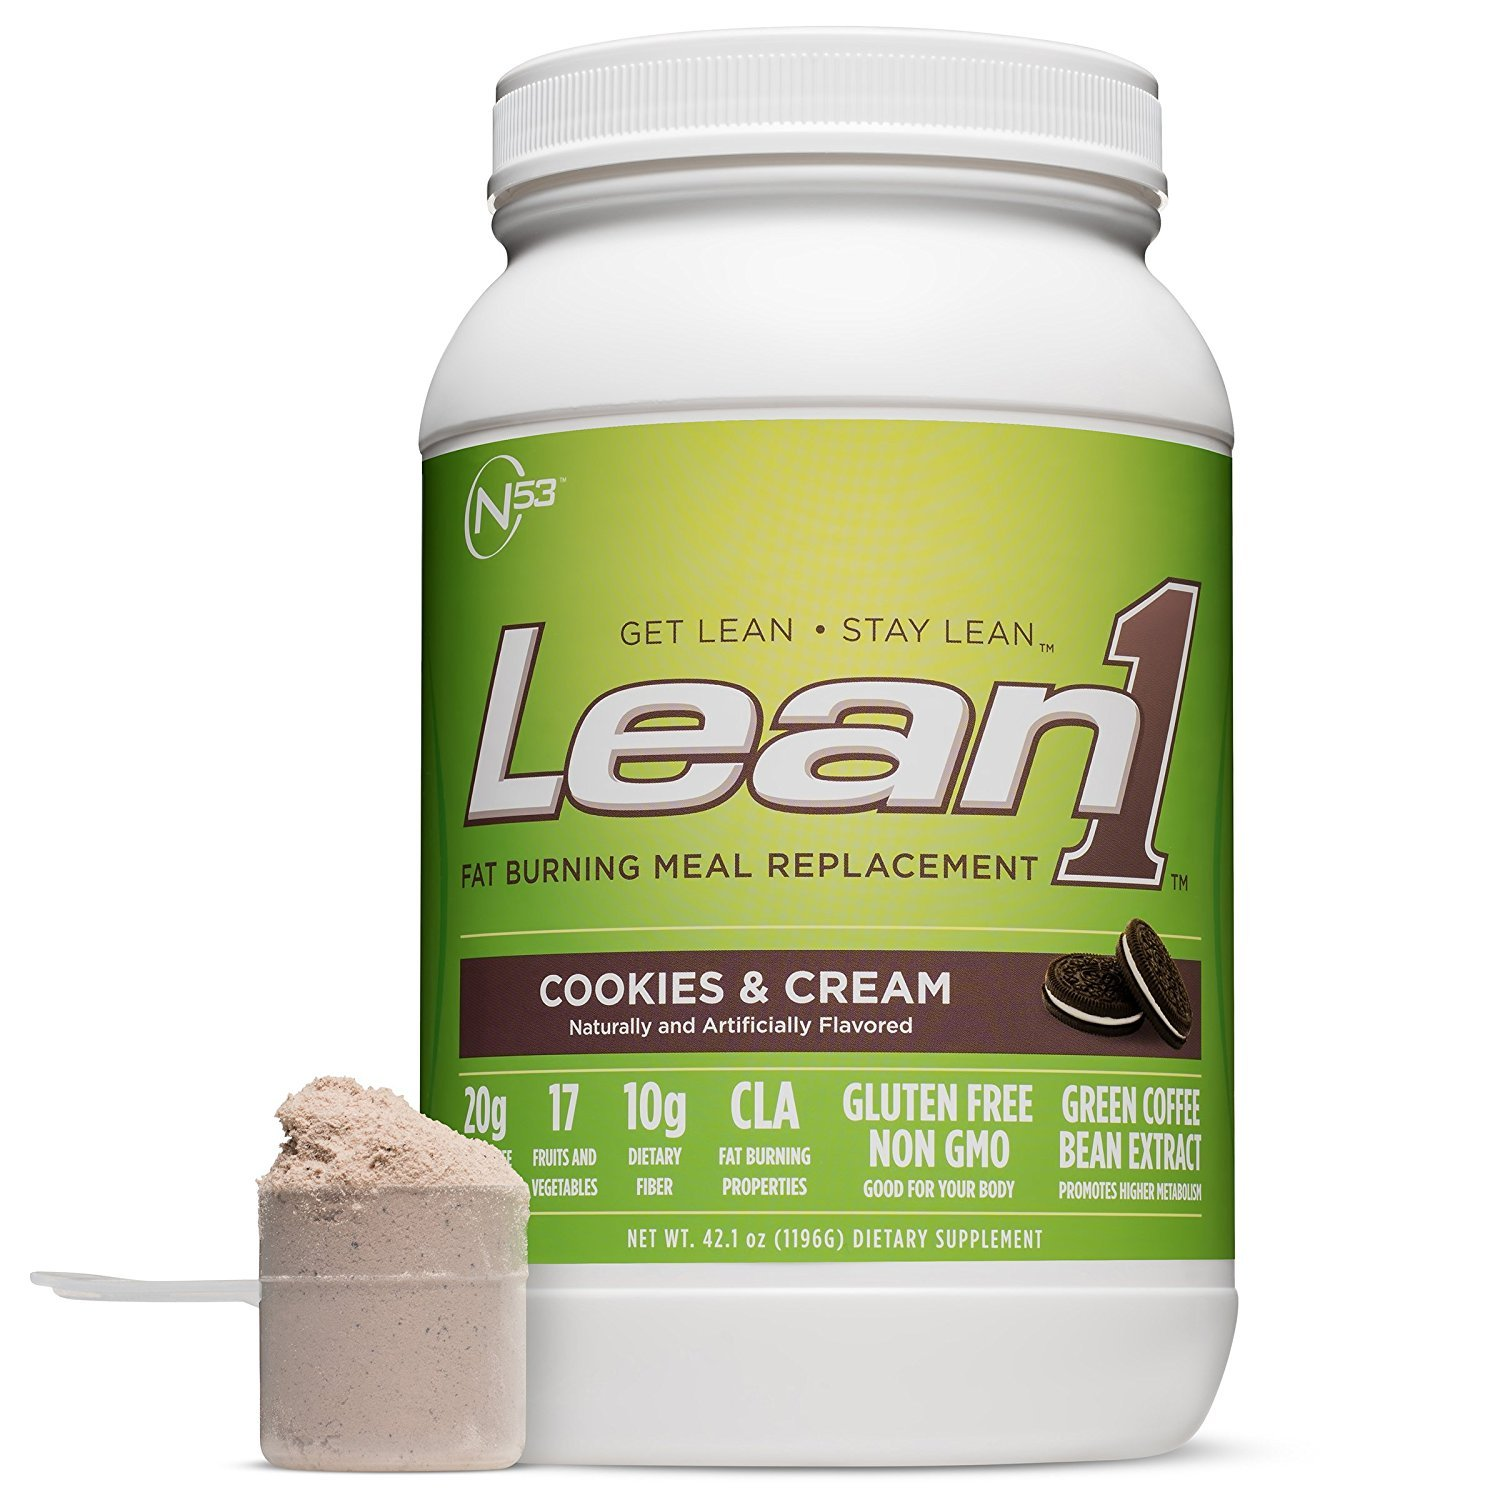 Lean 1 Cookies Cream Protein Powder Meal Replacement Shakes By Nutrition 53 Lactose